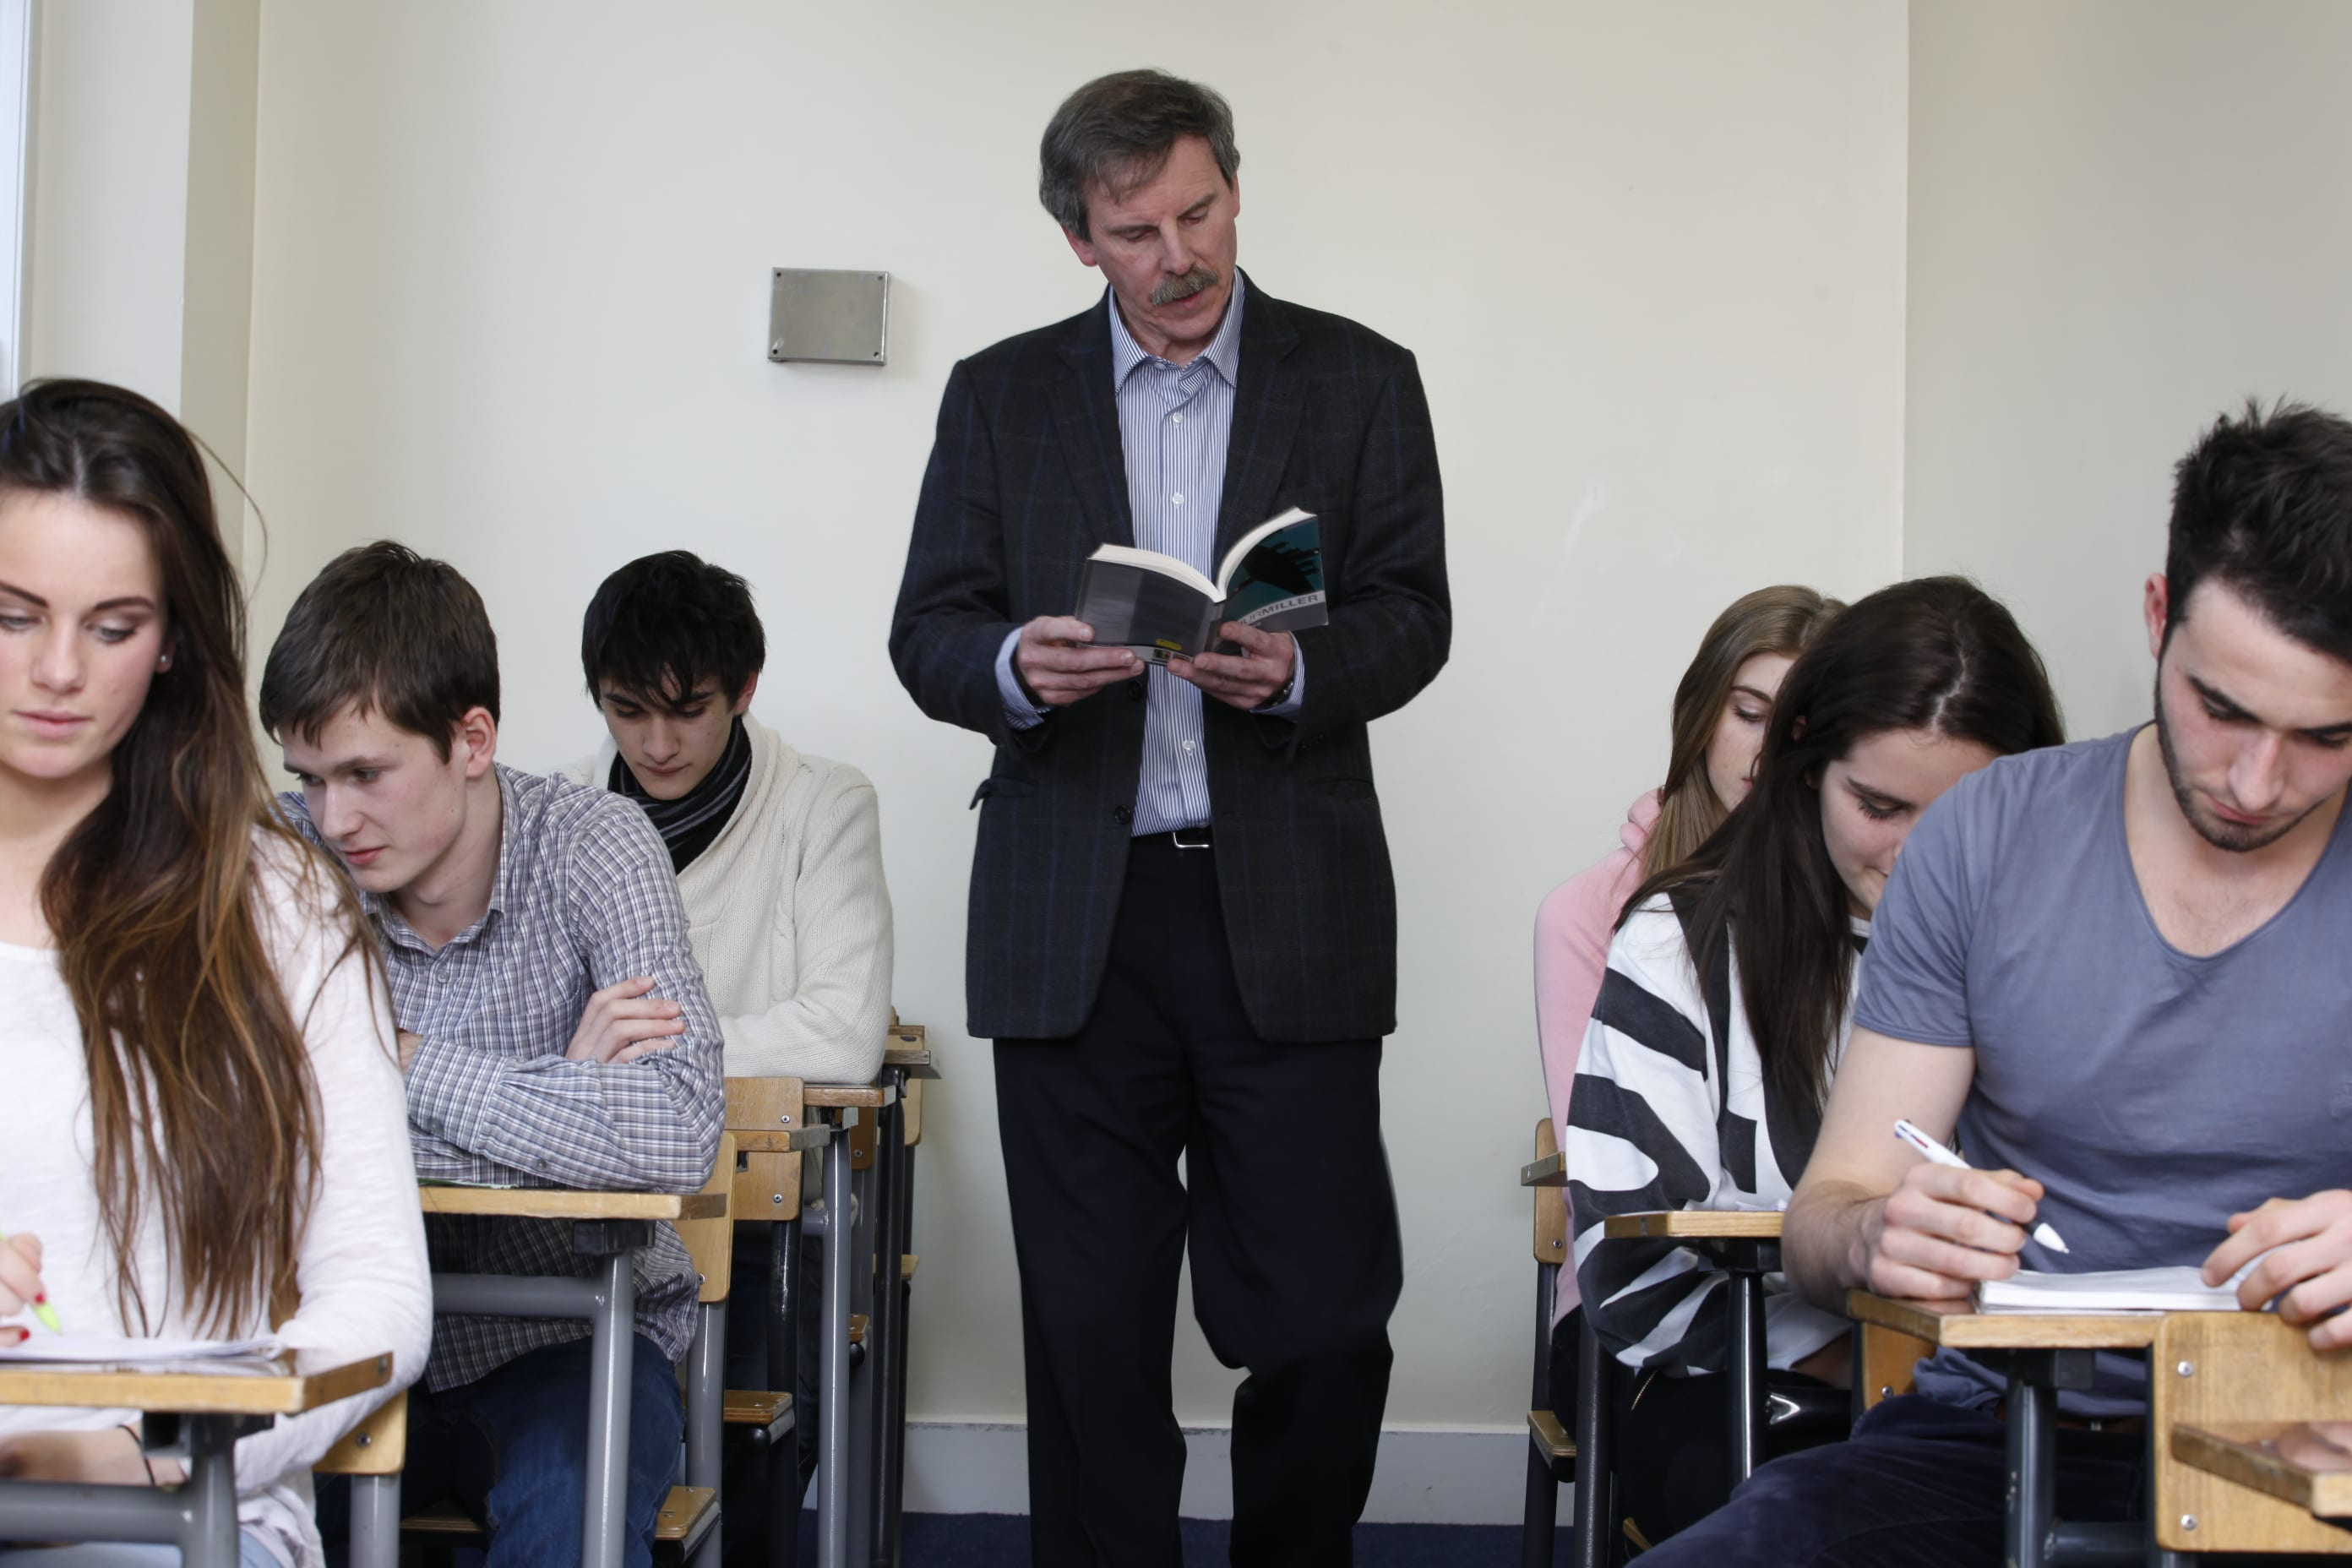 Martin Kelly - English Teacher at The Institute of Education